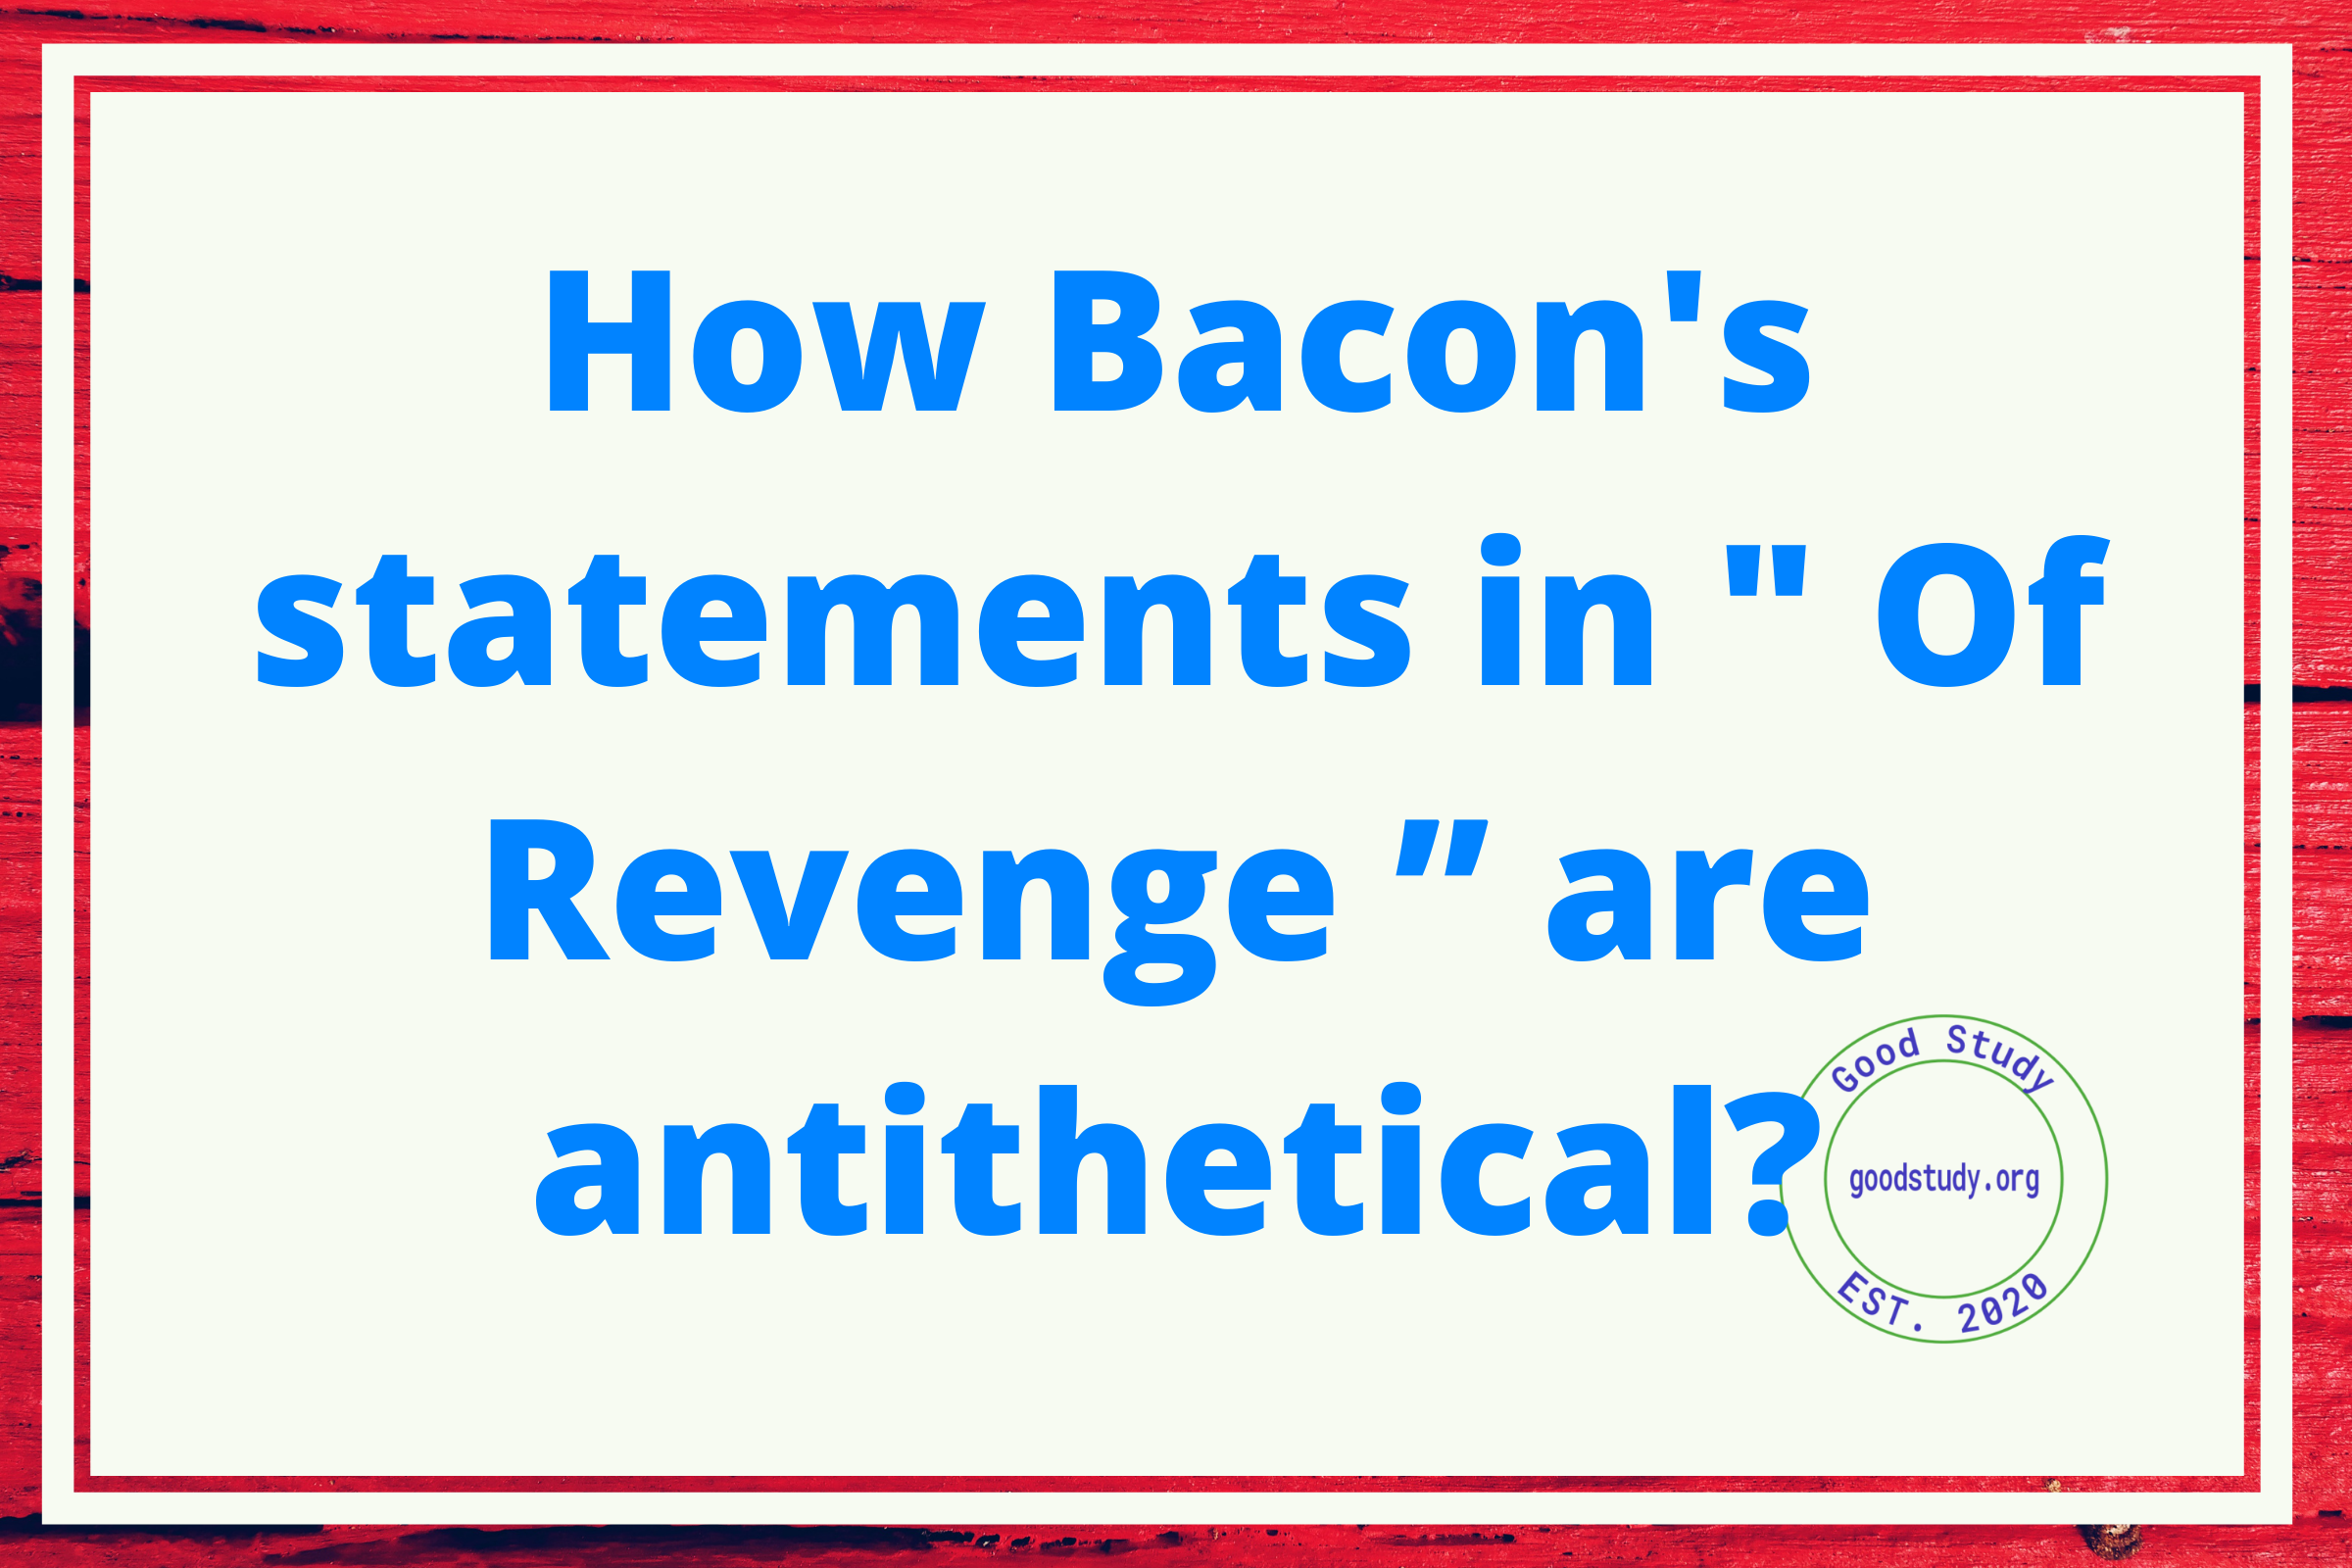 How Bacon's statements in